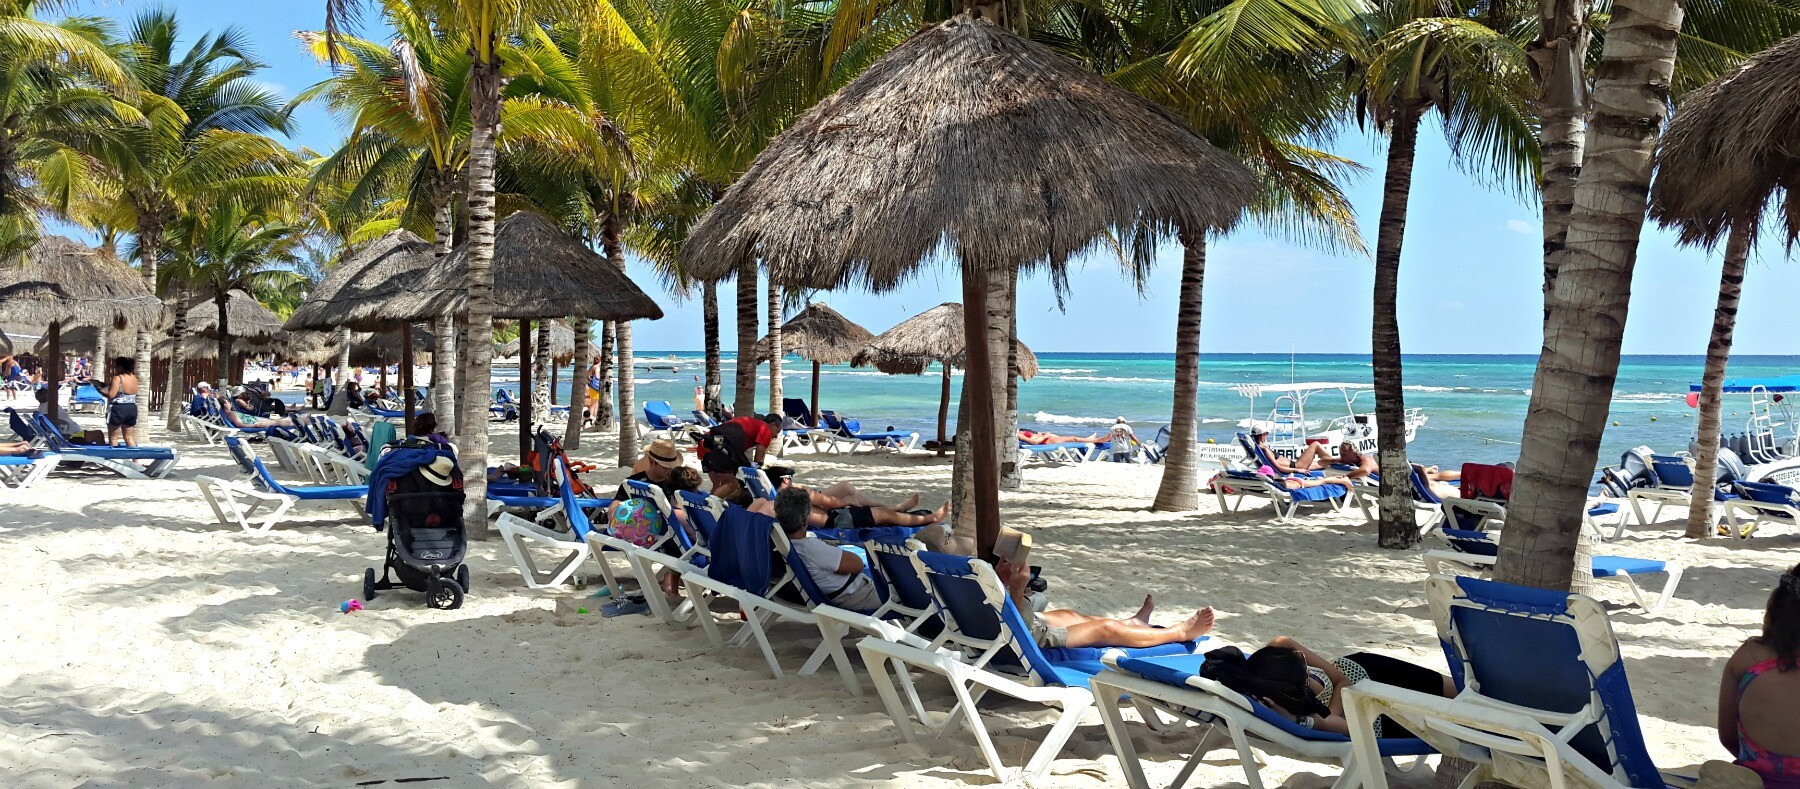 Riviera Maya eco resort beach